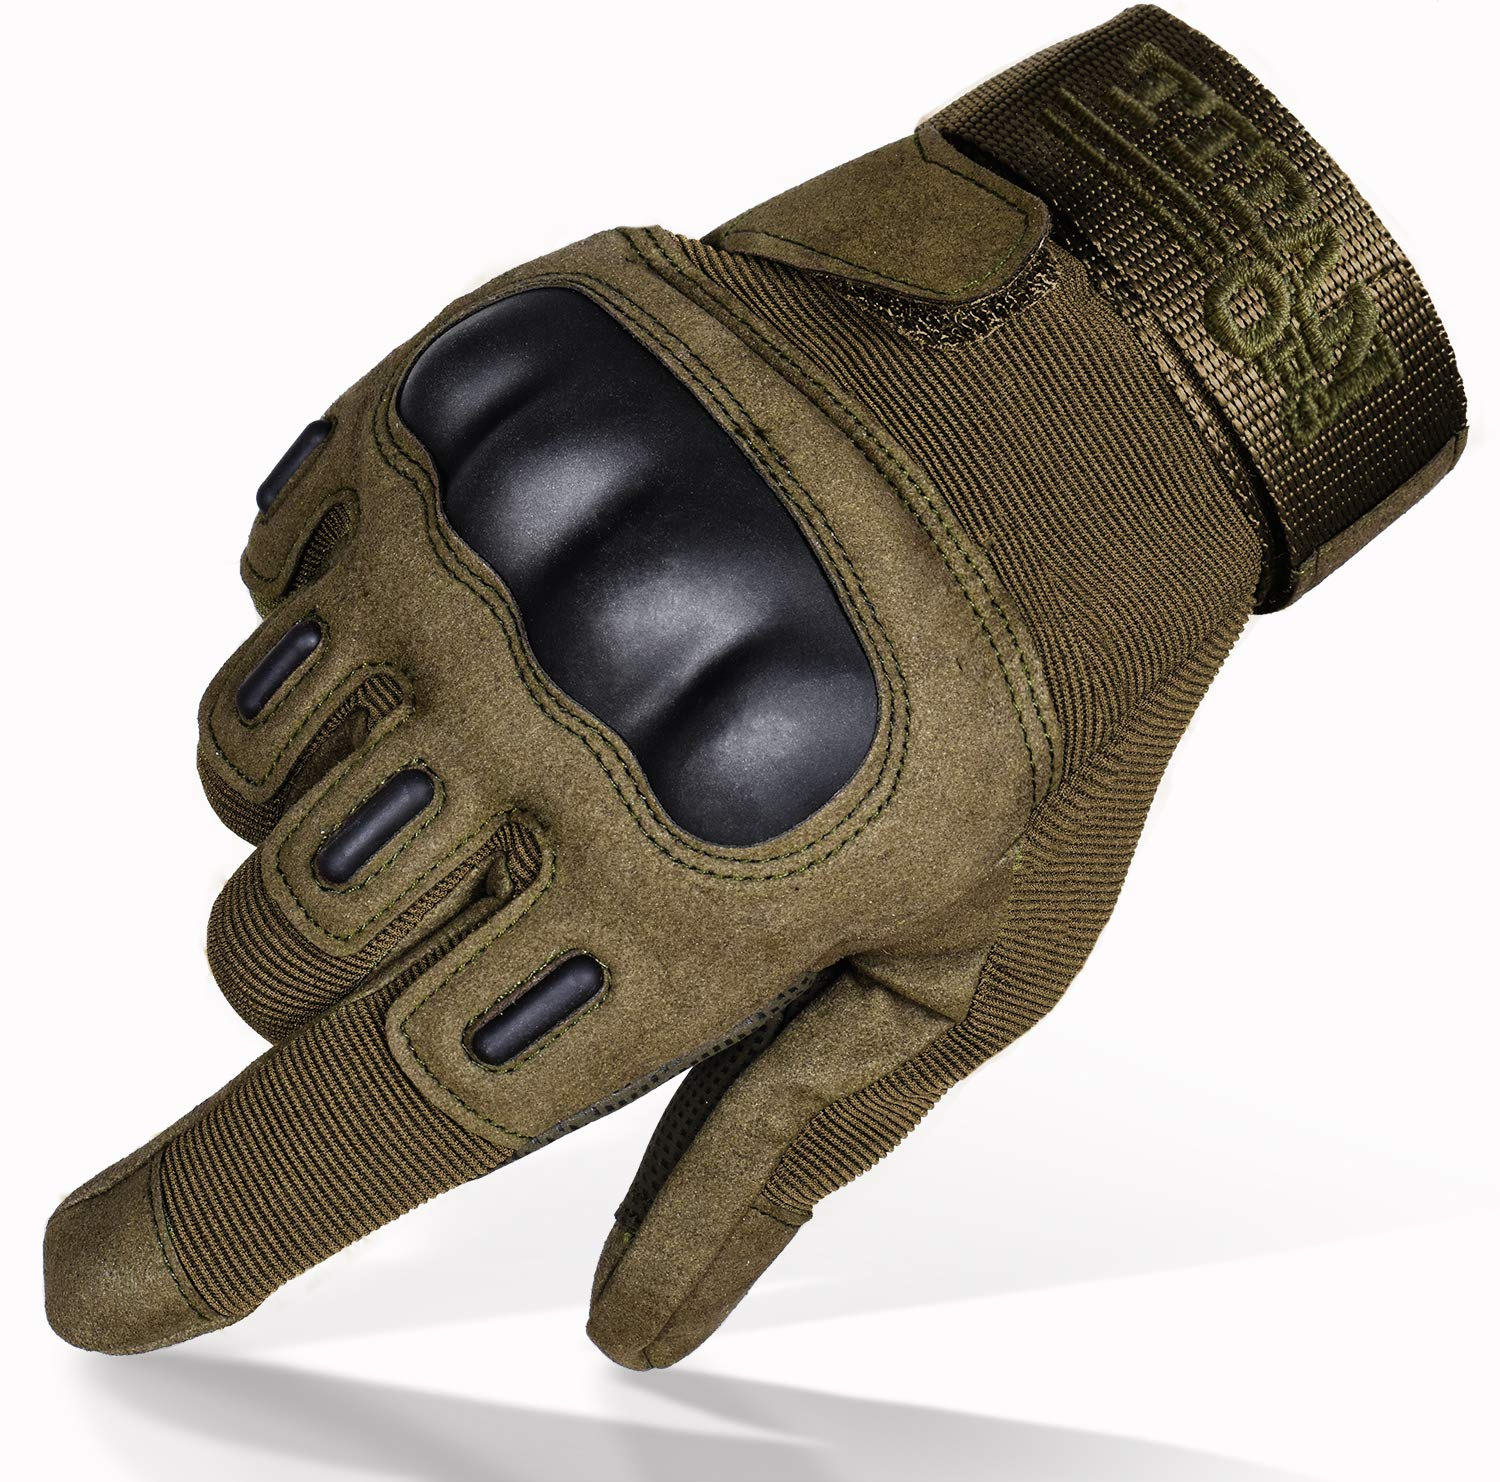 Riparo Women Tactical Touchscreen Gloves Military Shooting Hunting Hard Knuckle